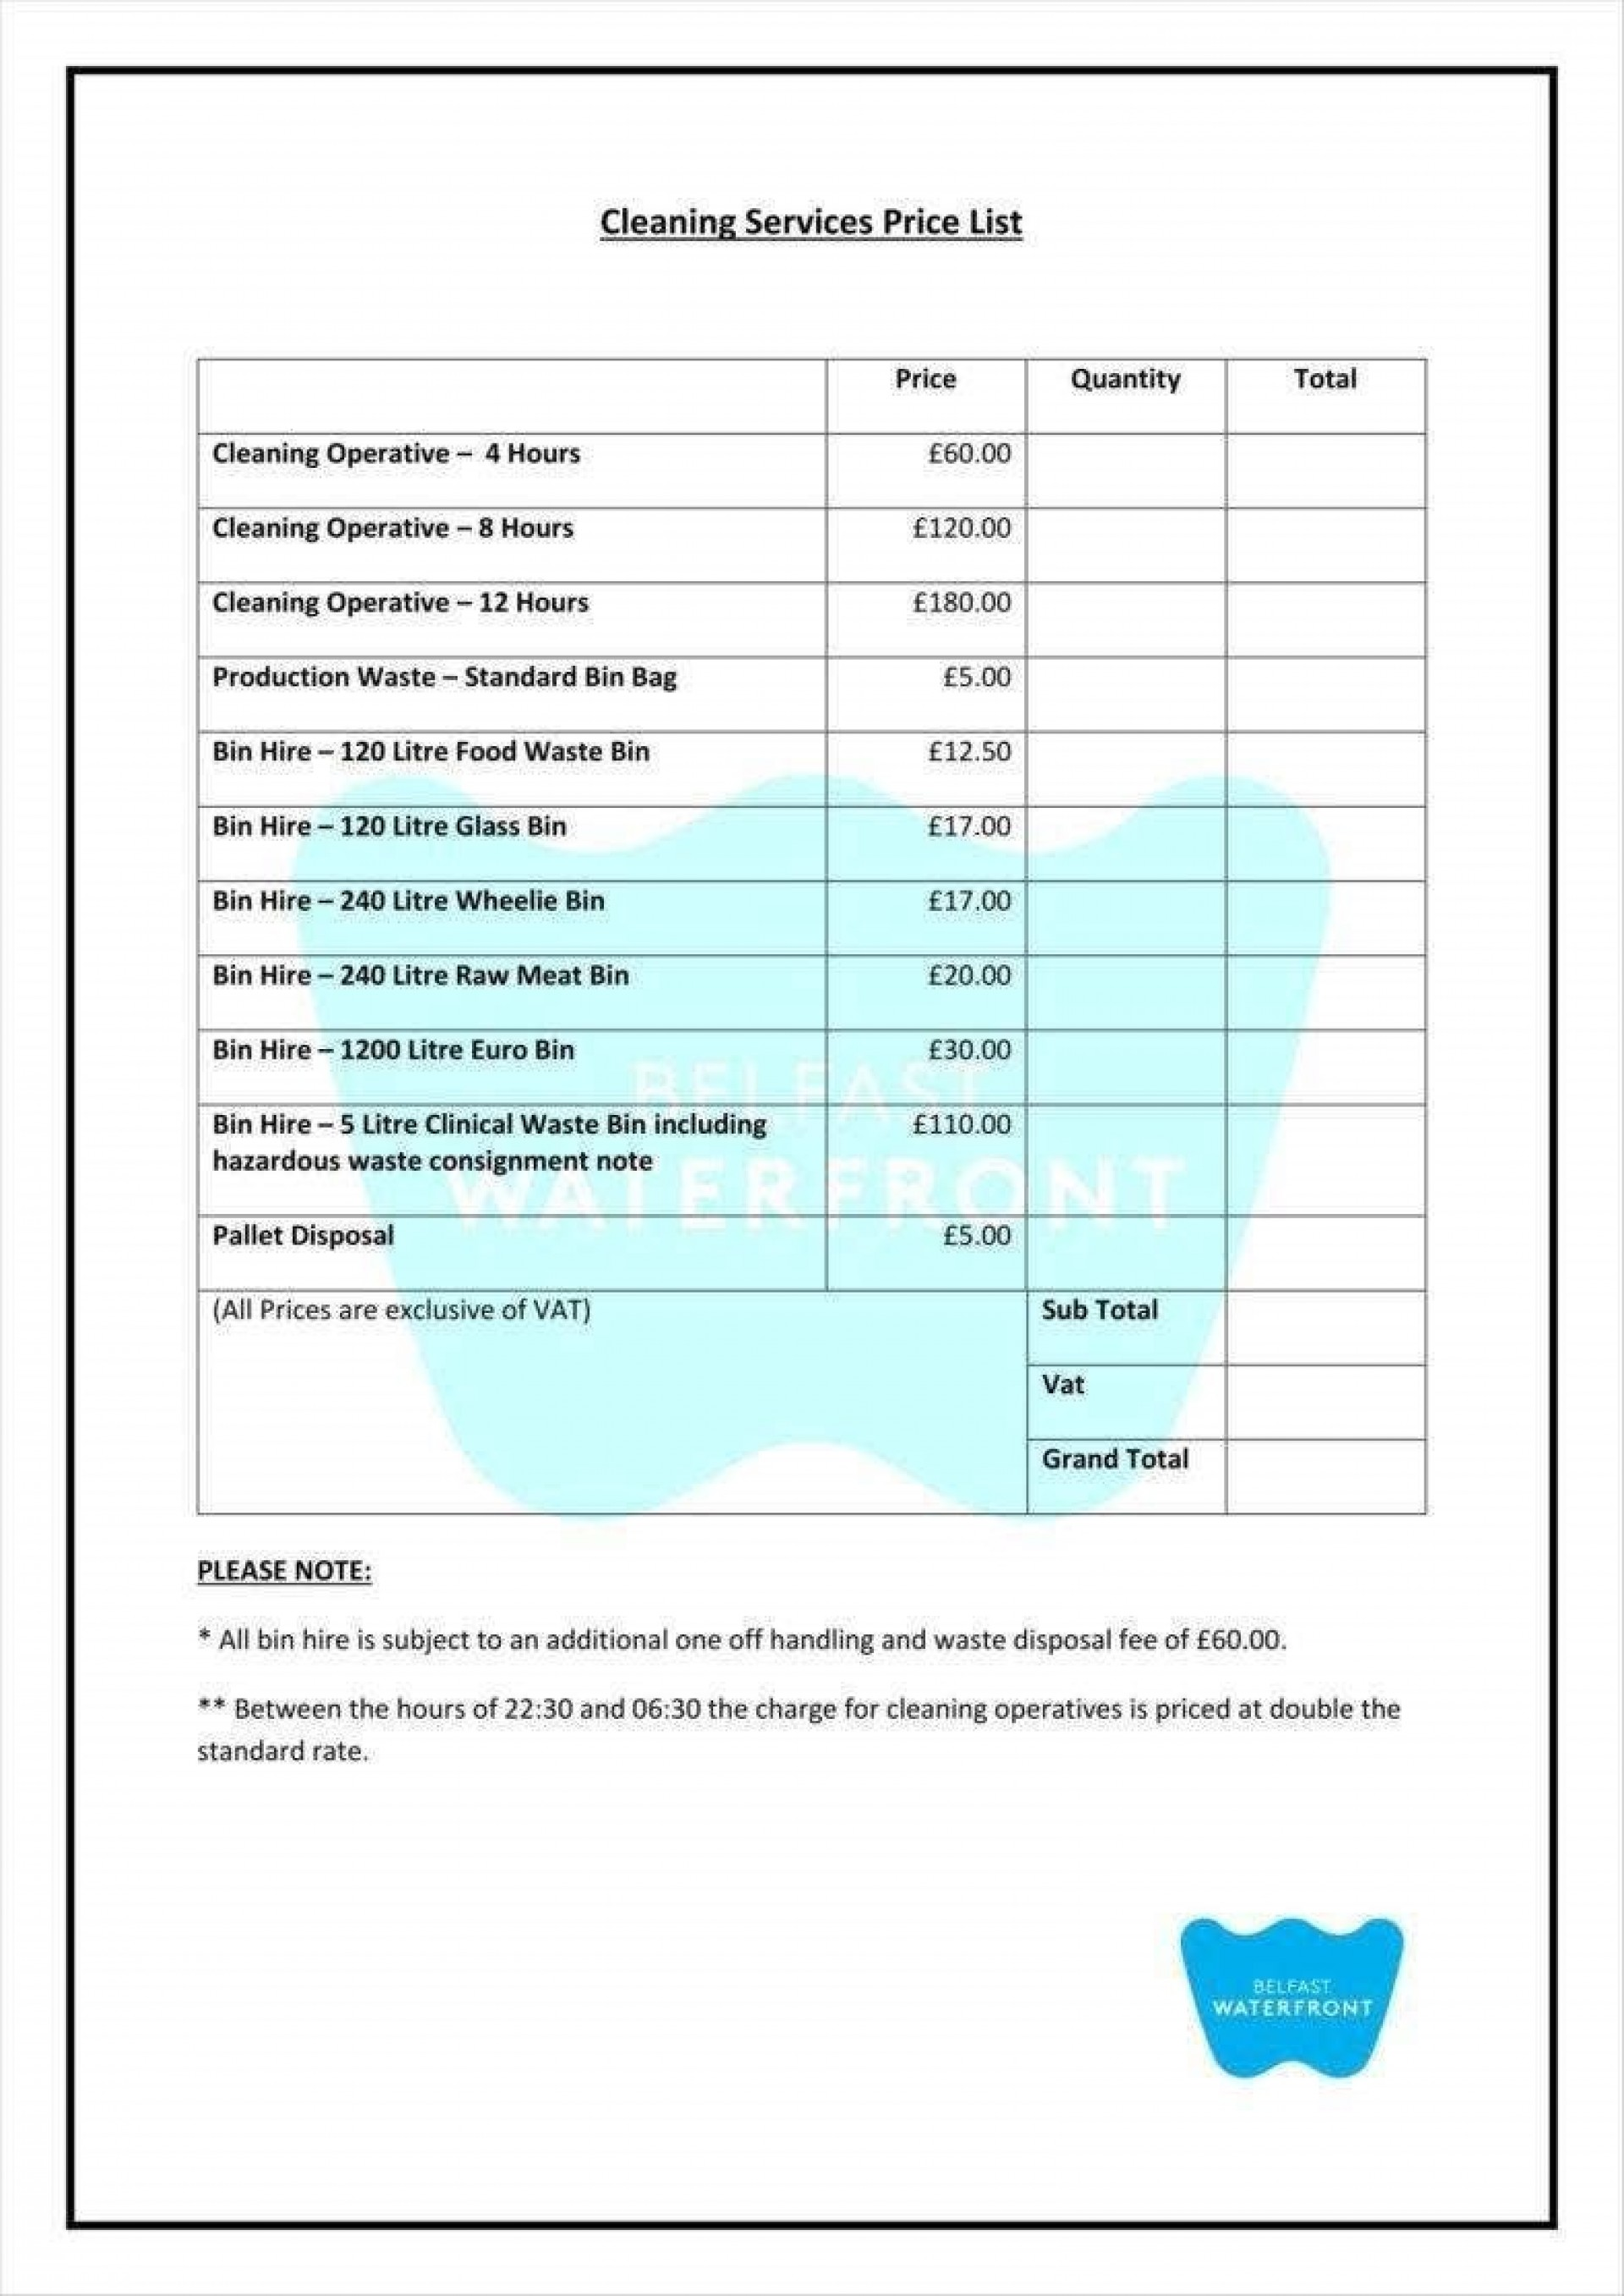 000 Impressive Cleaning Service Price List Template Example  Commercial Pdf1920